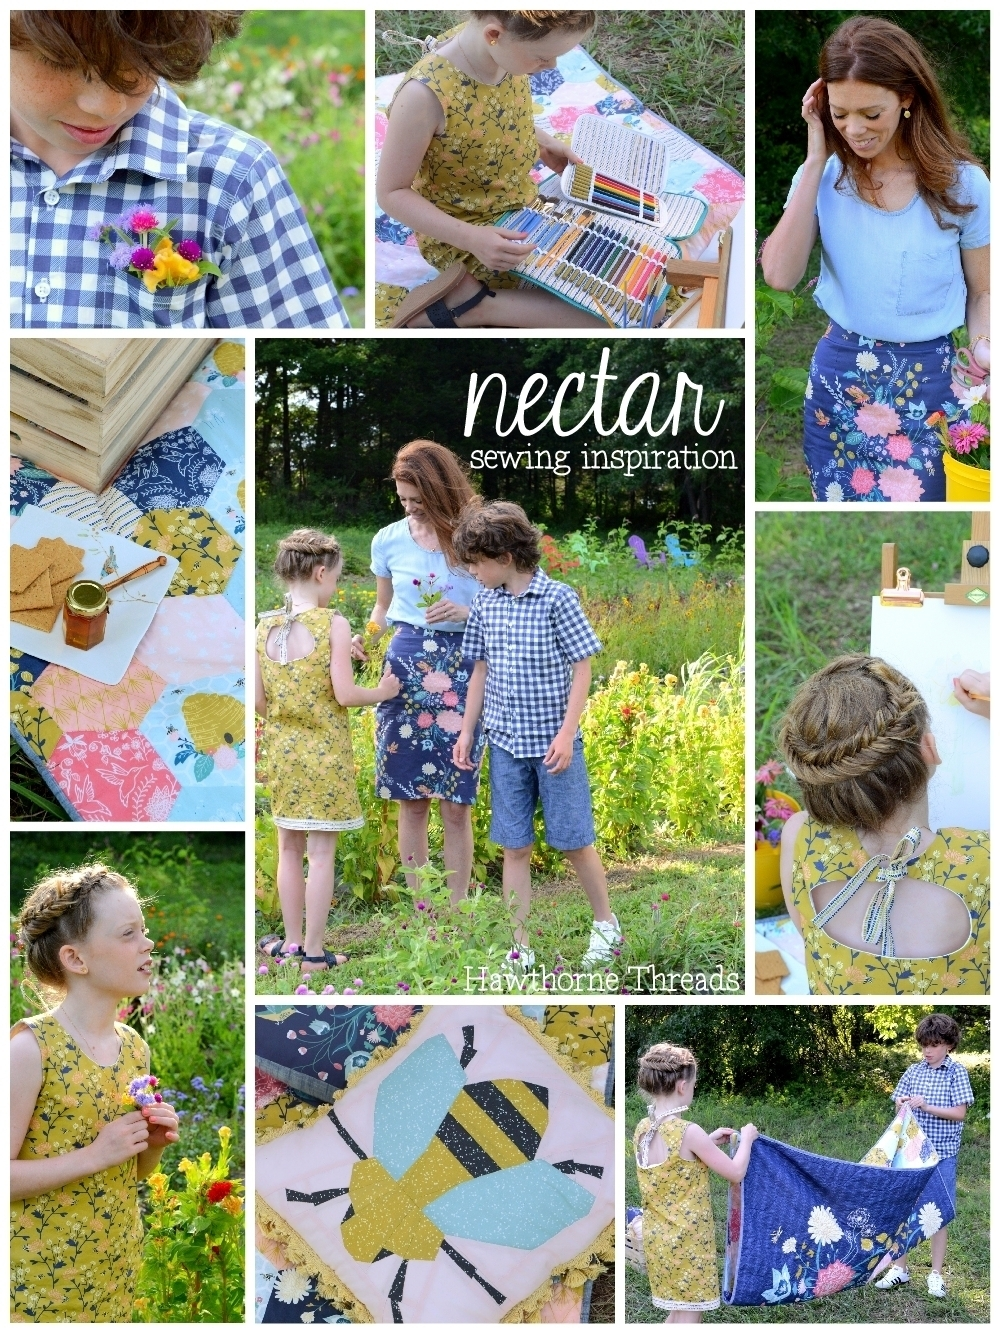 Nectar Sewing Inspiration 1000